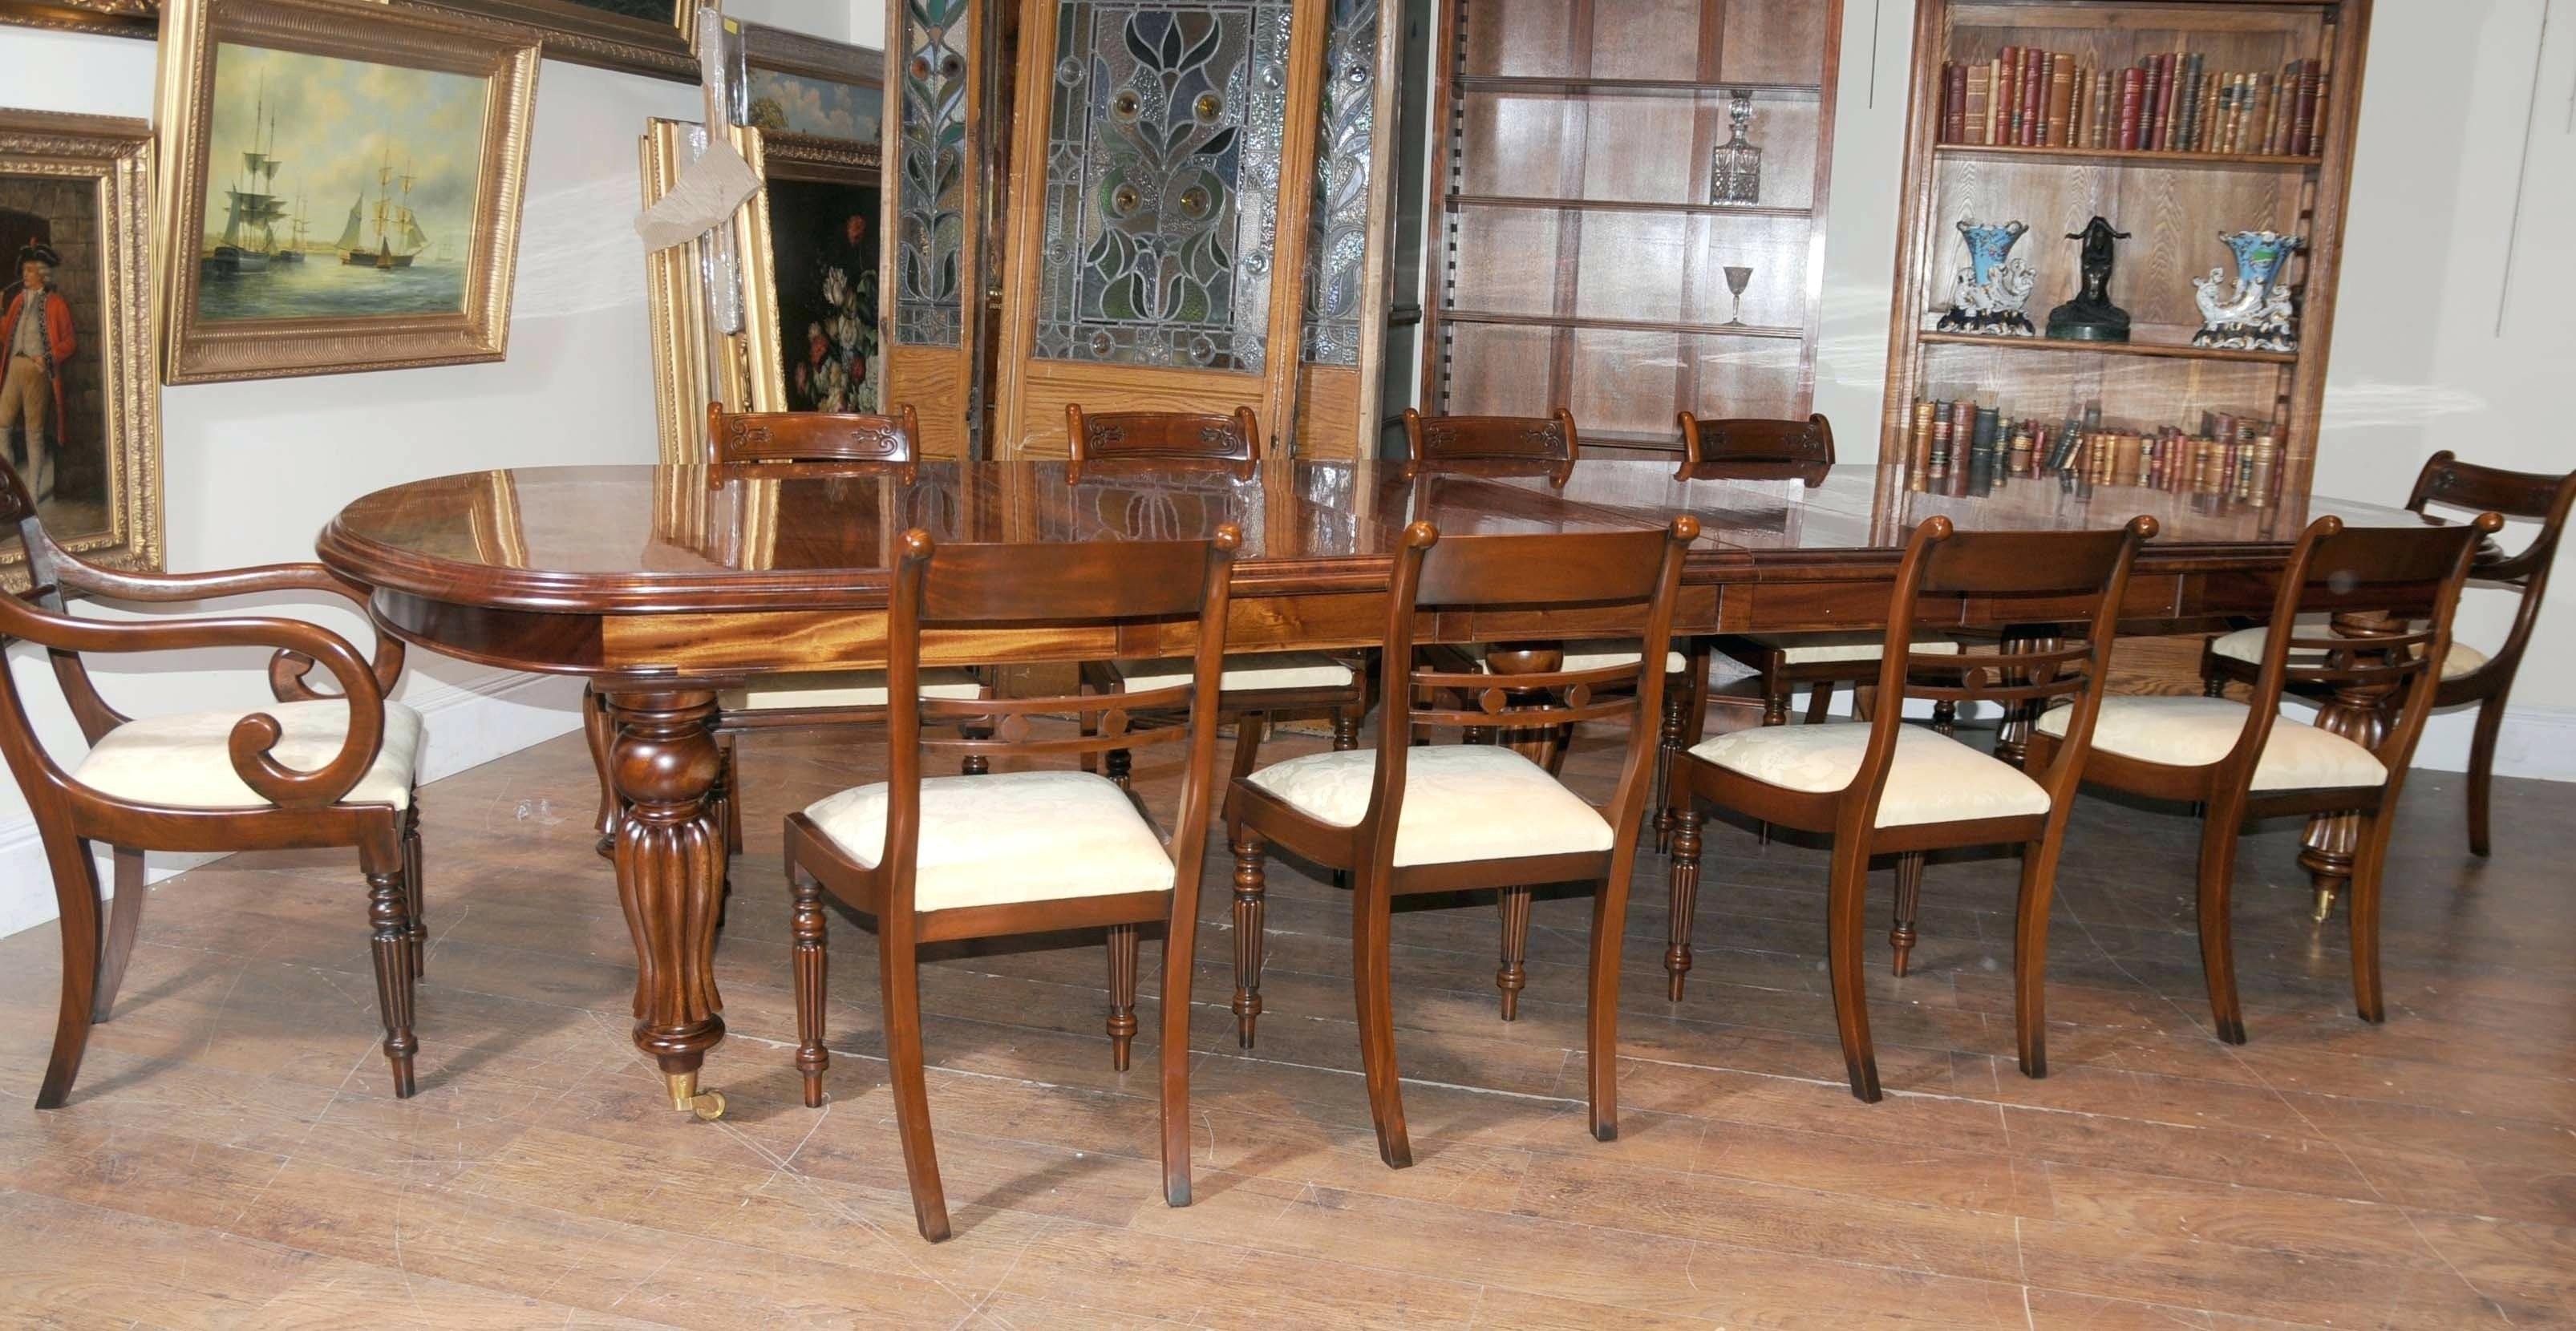 Dining Chairs Victorian Room Furniture Sets